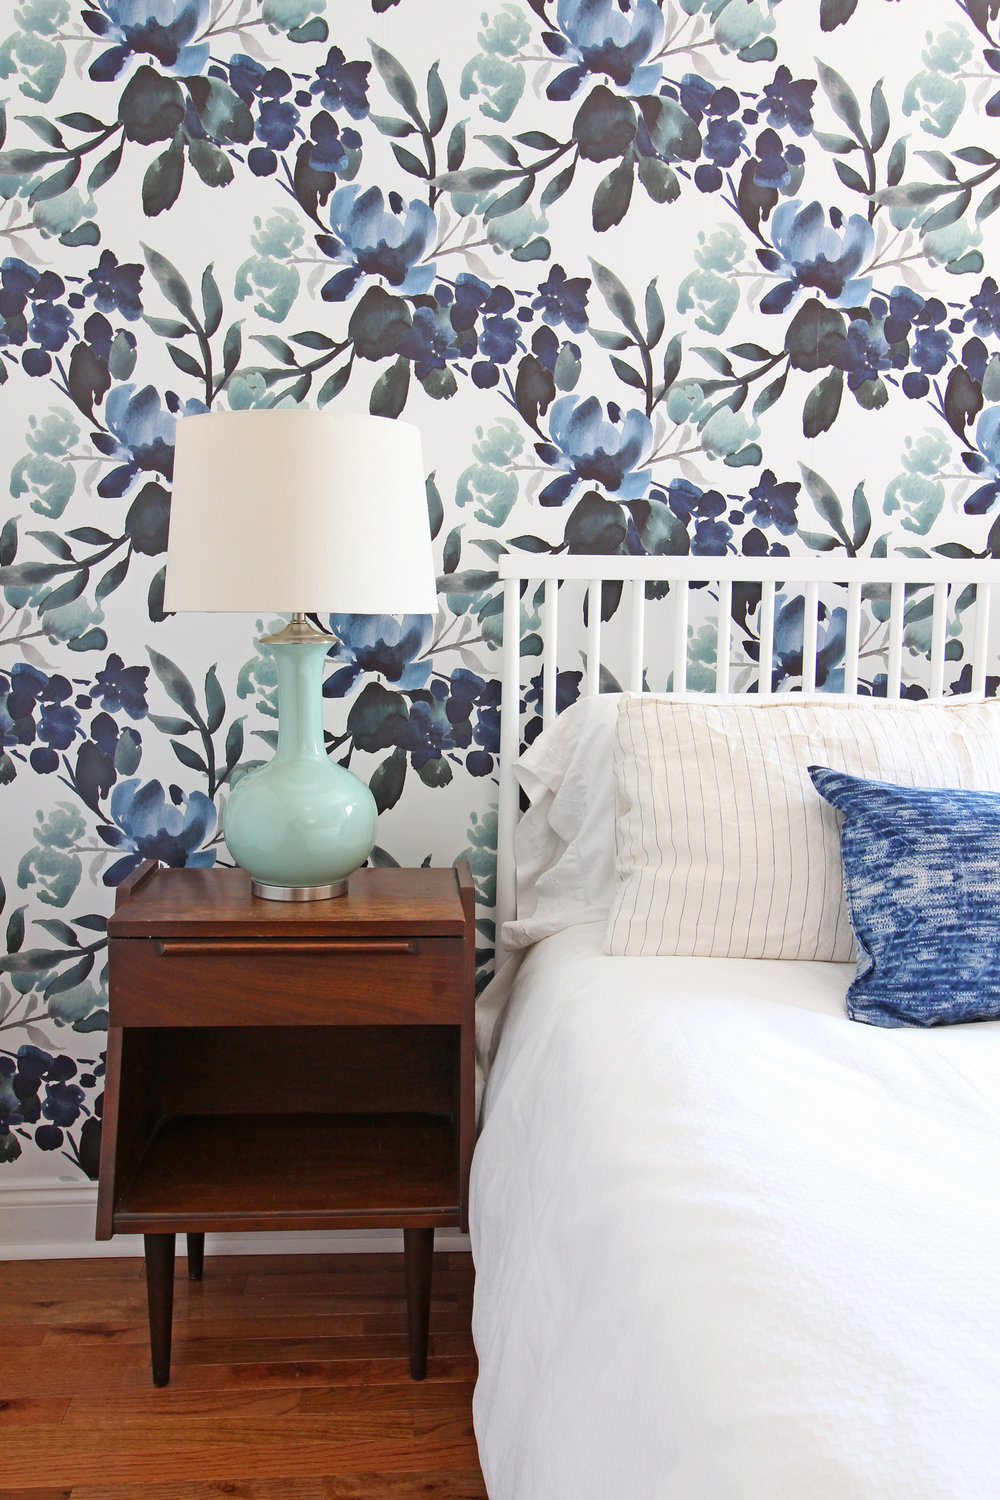 See the Week 3 One Room Challenge progress for Mix & Match Design Company's guest bedroom! This week, it's all about the blue-green floral wallpaper and a mid-century nightstand conundrum.